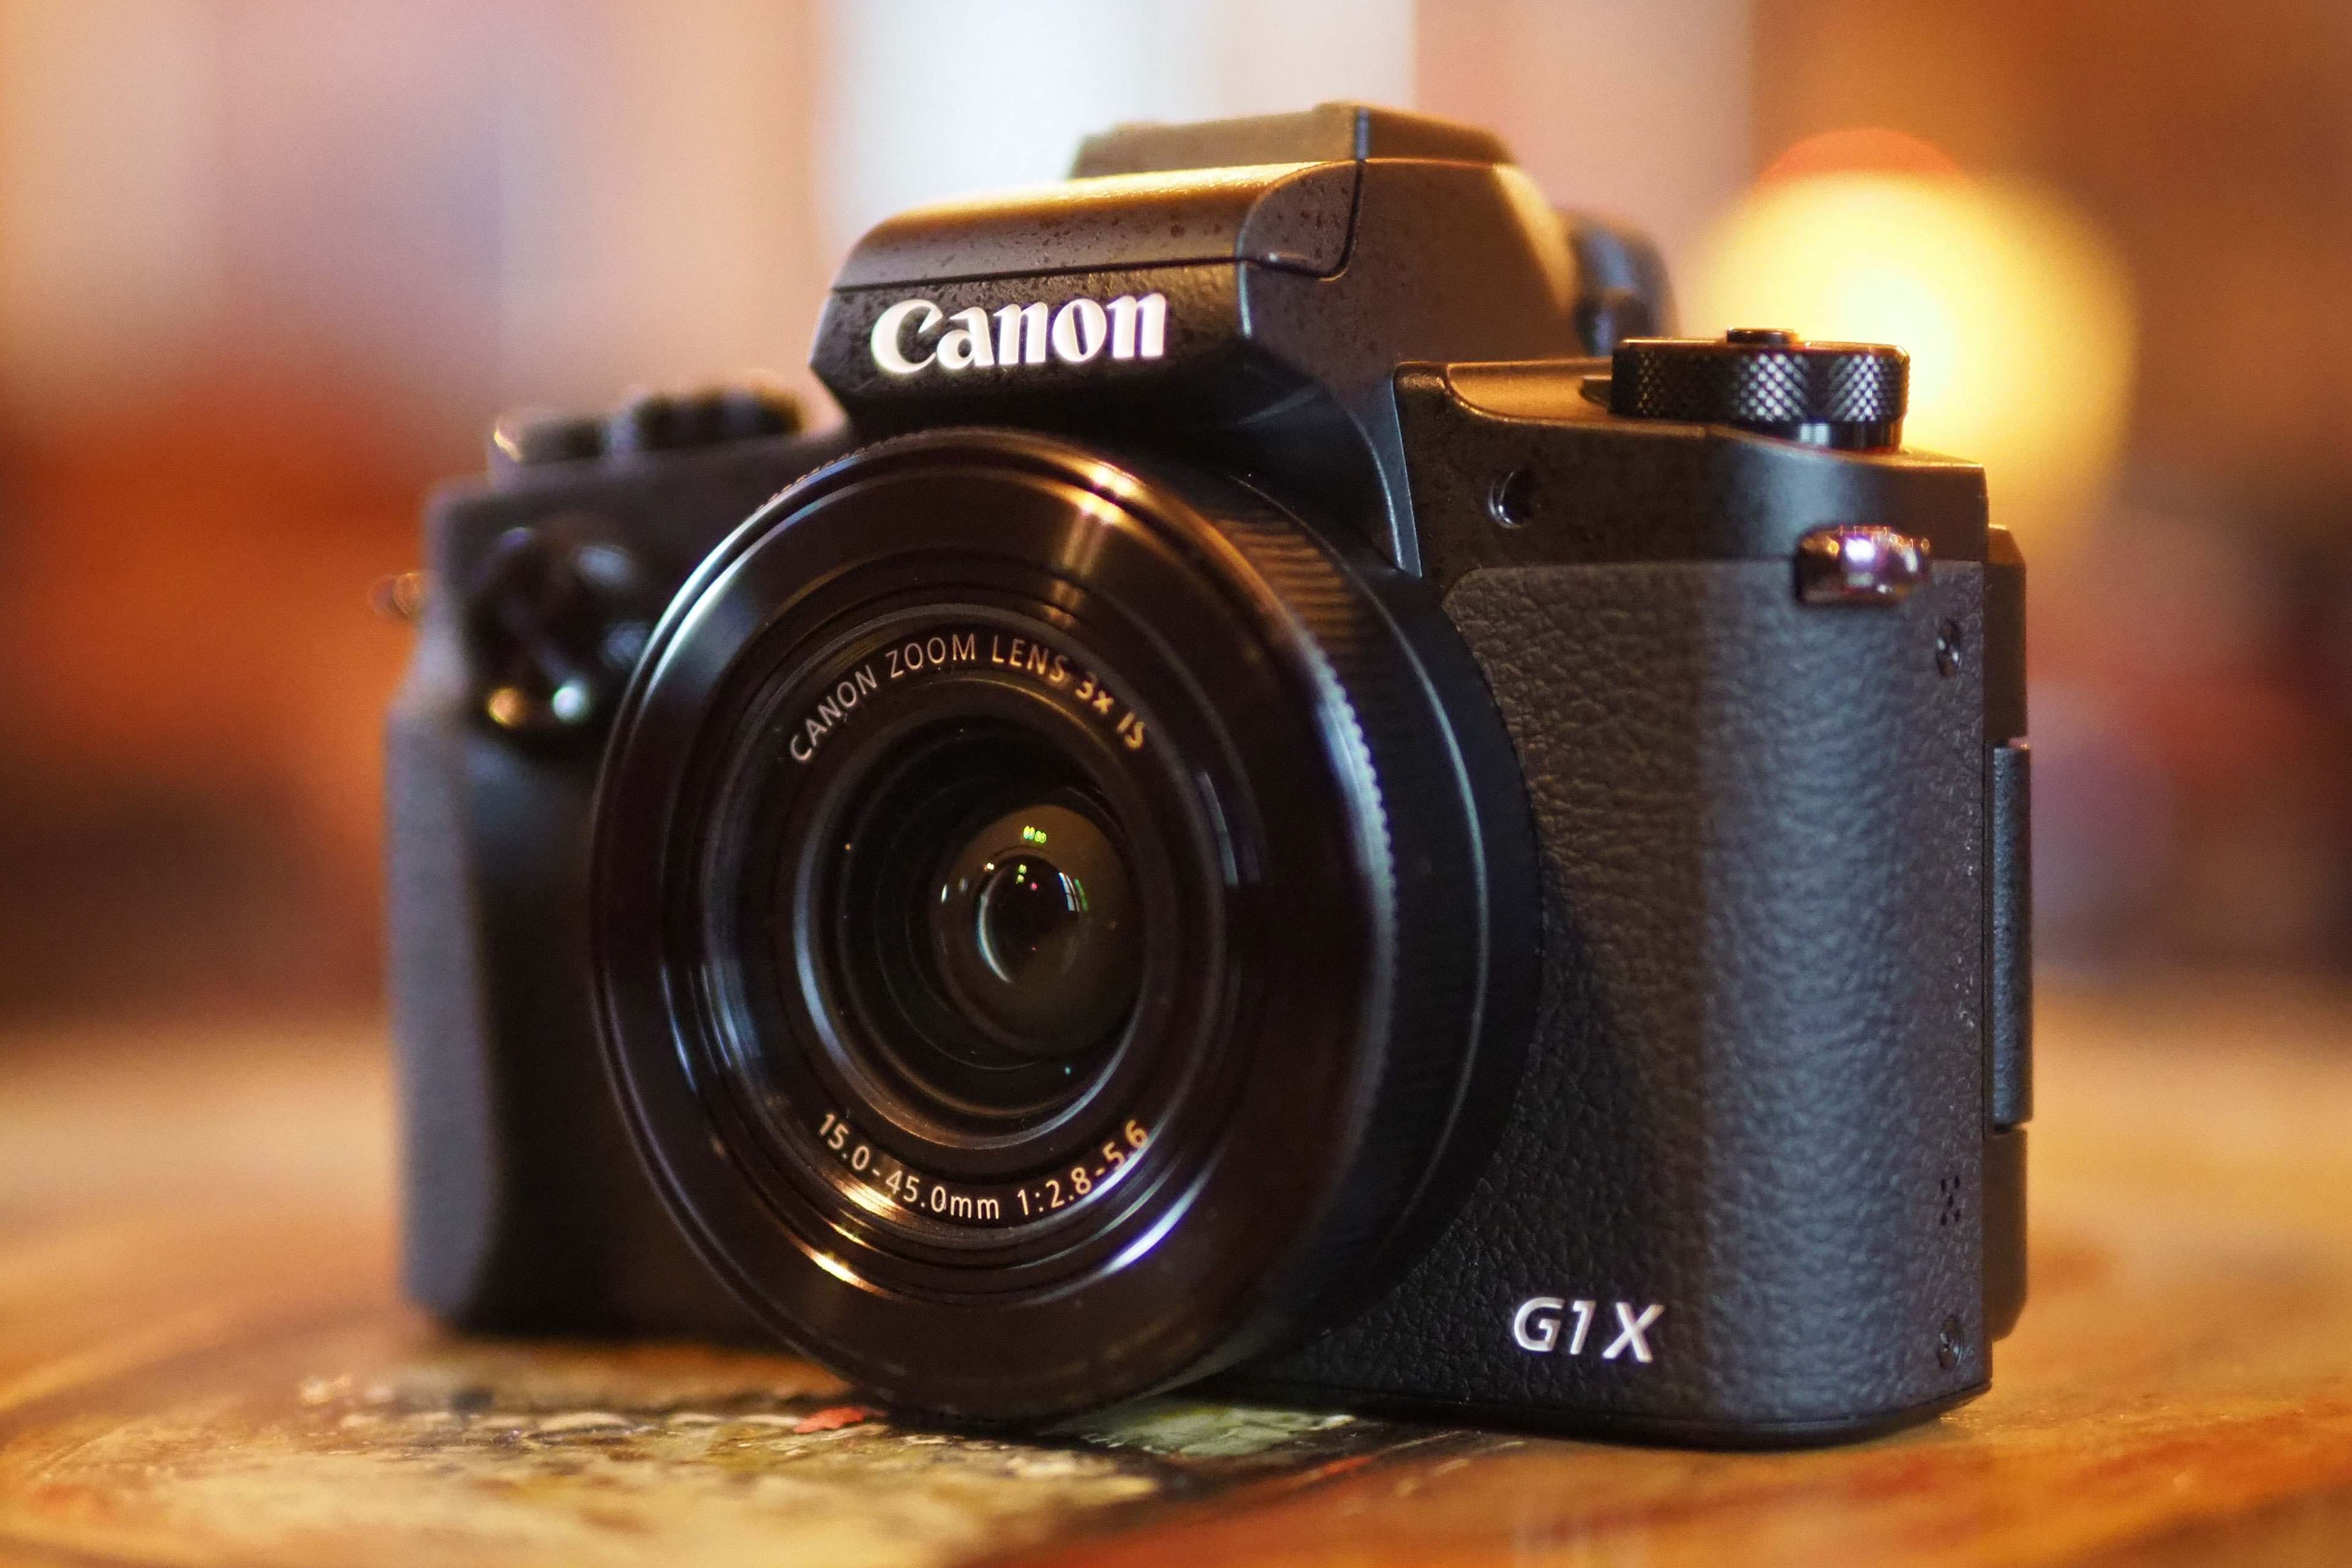 Canon G1x Mark Iii Review Cameralabs Powershot G3 X Wi Fi And Nfc